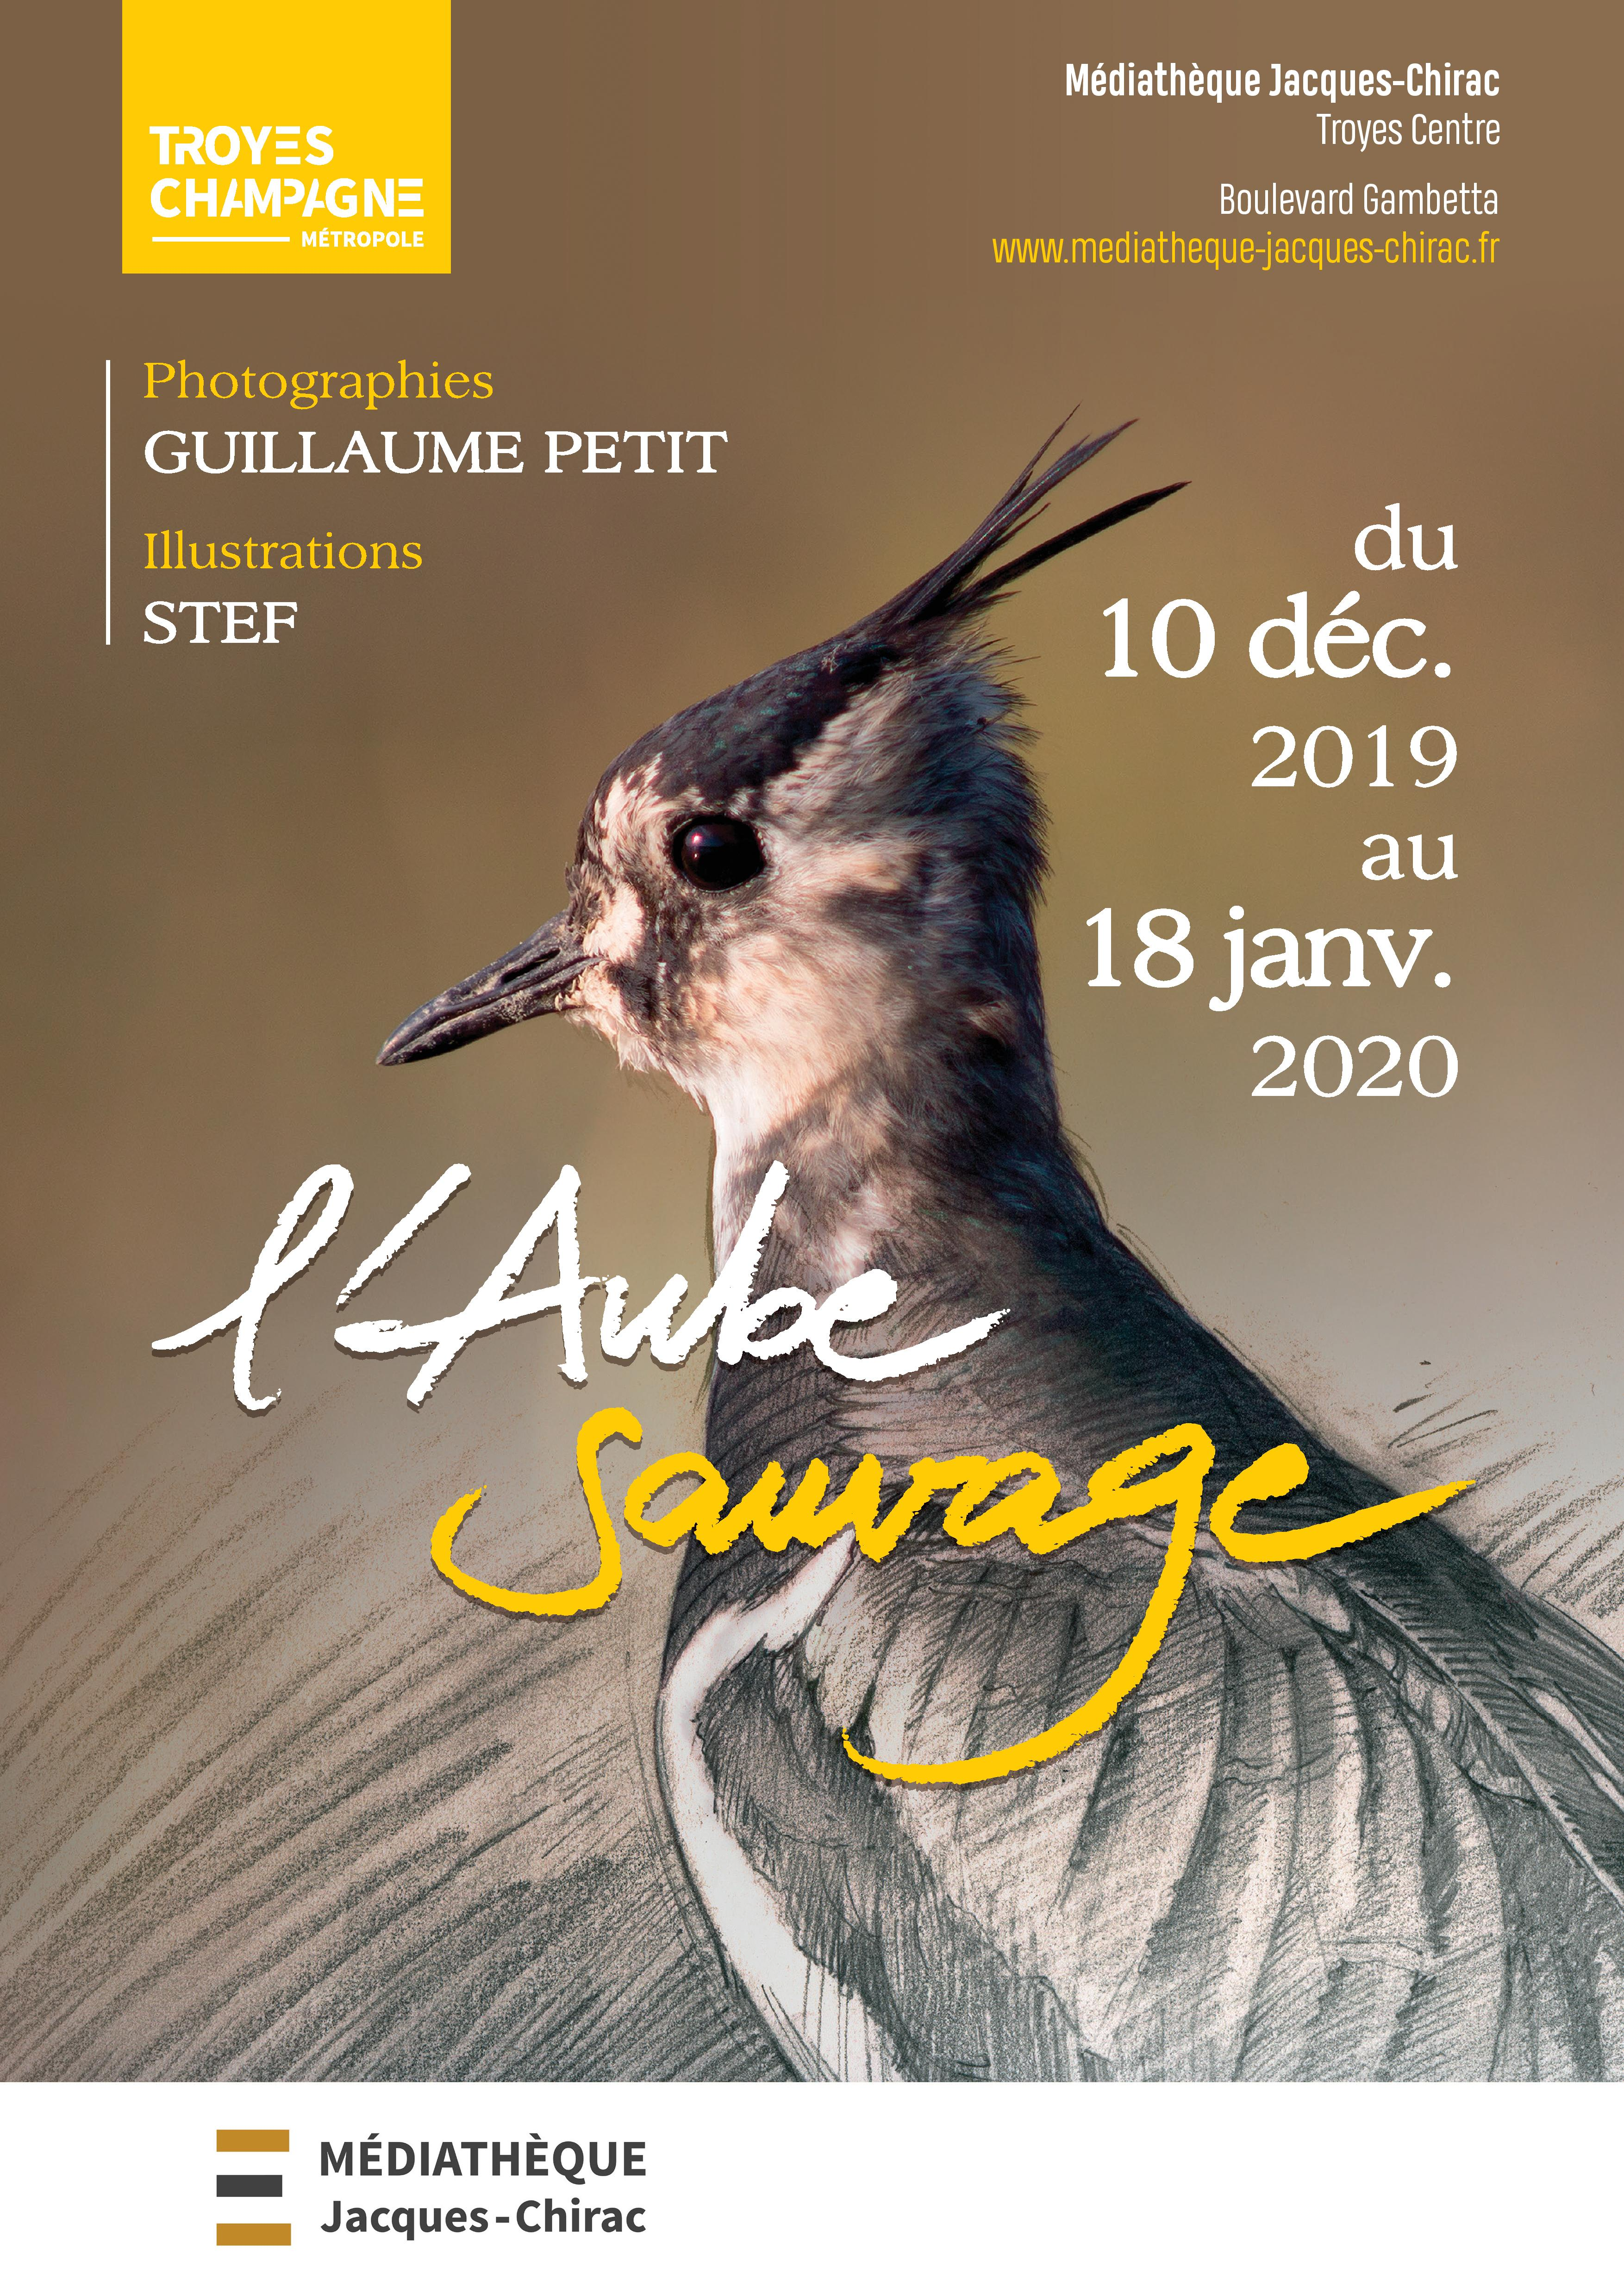 Troyes : Vernissage exposition « L'Aube sauvage »